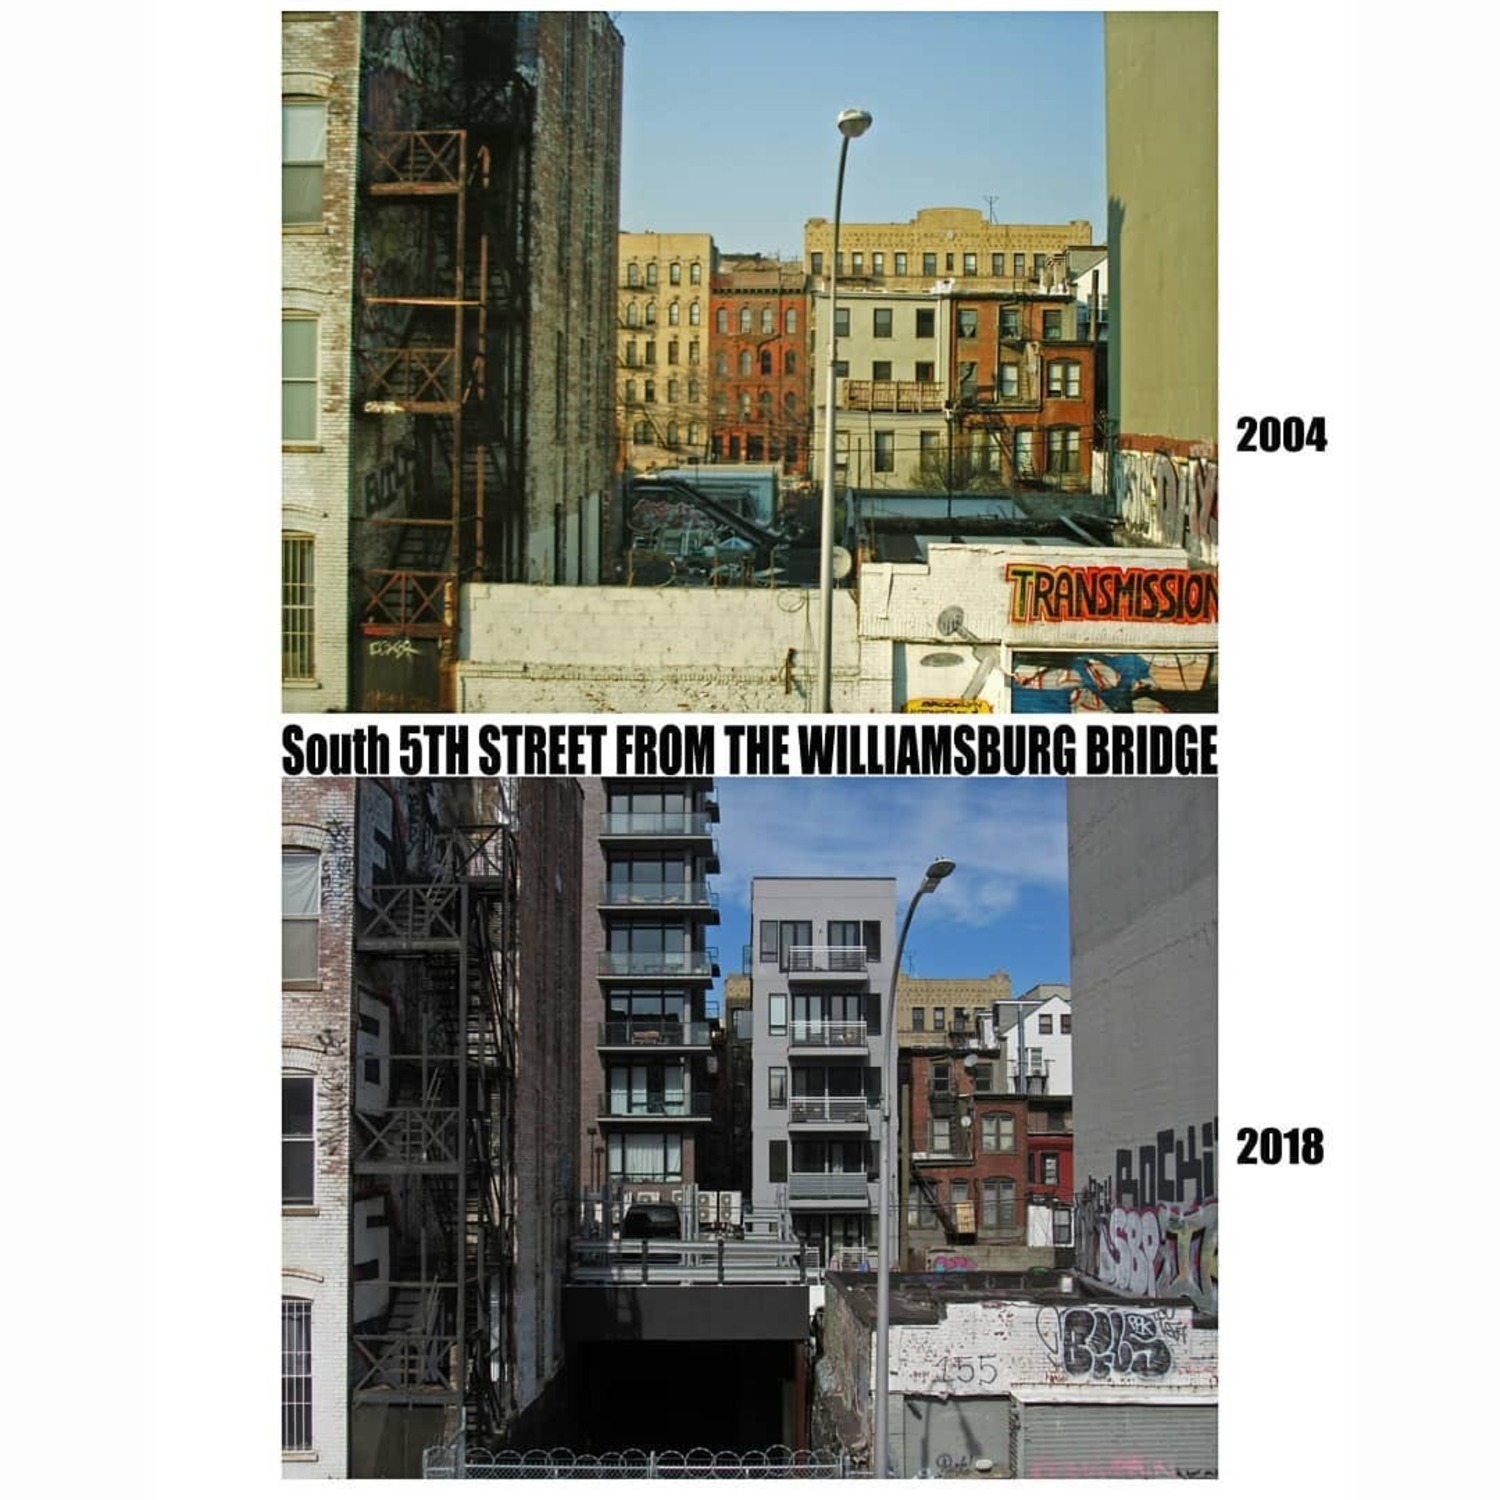 South 5th Street from the Williamsburg Bridge  2004 / 2018  #williamsburgbrooklyn #williamsburg #williamsburgbridge #brooklyn #nyc #newyorkcity #buildings #beforeandafter #thenandnow #nostalgia #nostalgic #oldbuildings #newbuildings #graffiti #graffitiart #transmission #fireescapes #disappearingnyc #disappearing #nygritty #city #grittycity #gentrification #neighborhood #BKLYN #11211 #signage #brooklynhistory #condos #apartment